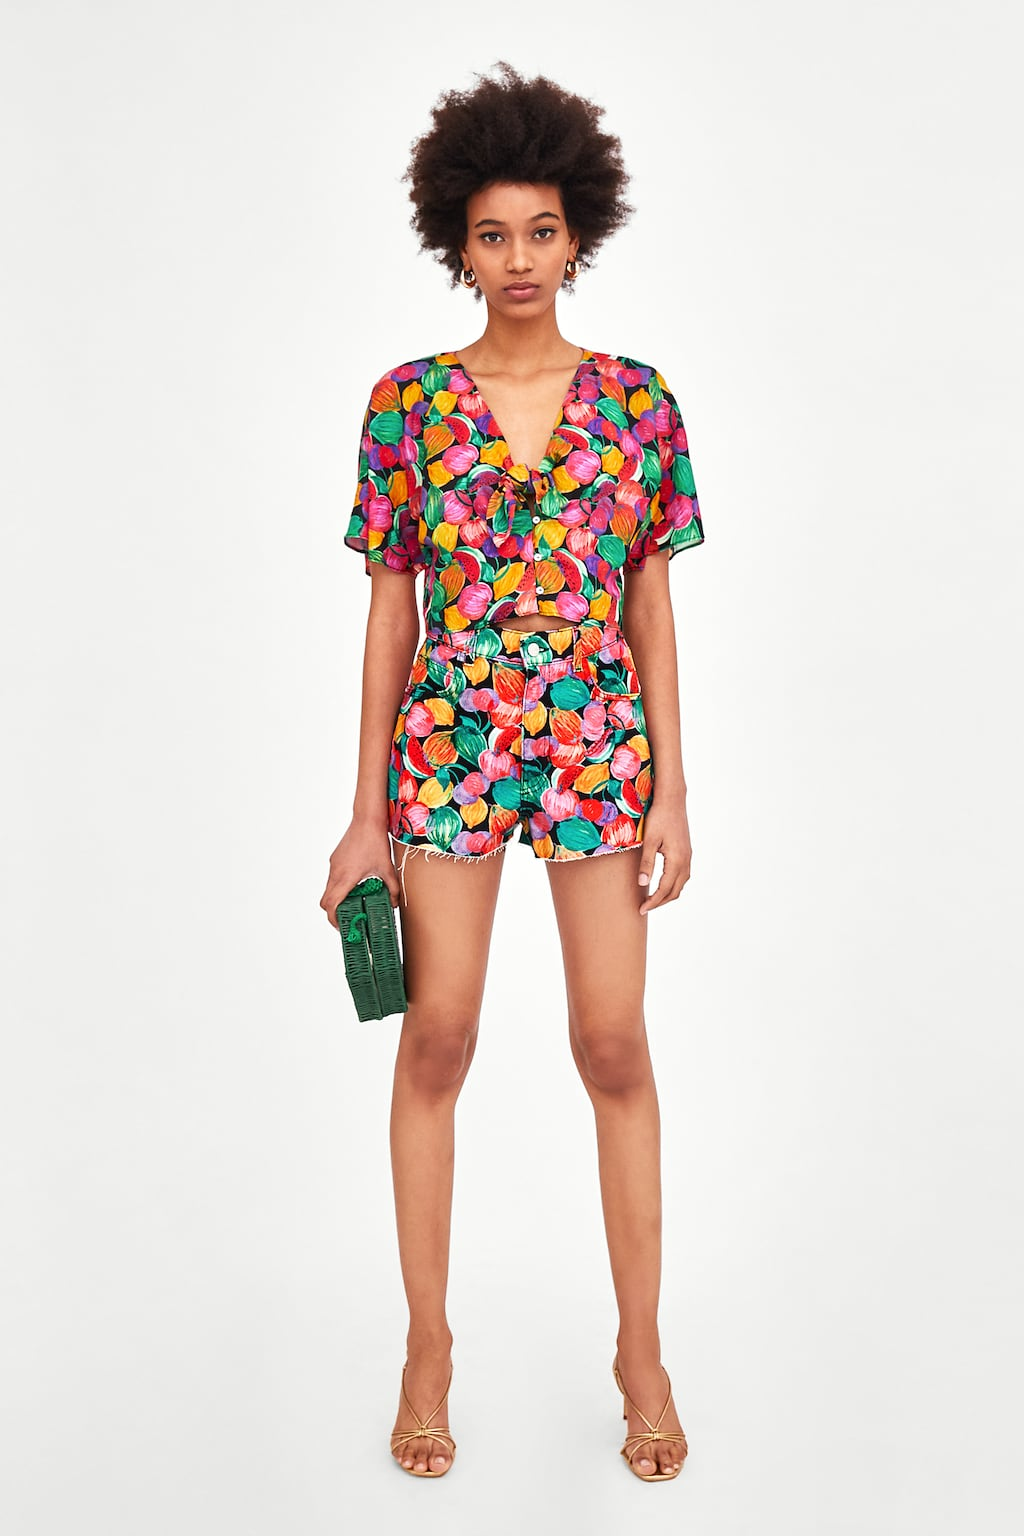 ZARA FRUIT PRINT TOP AND SHORT